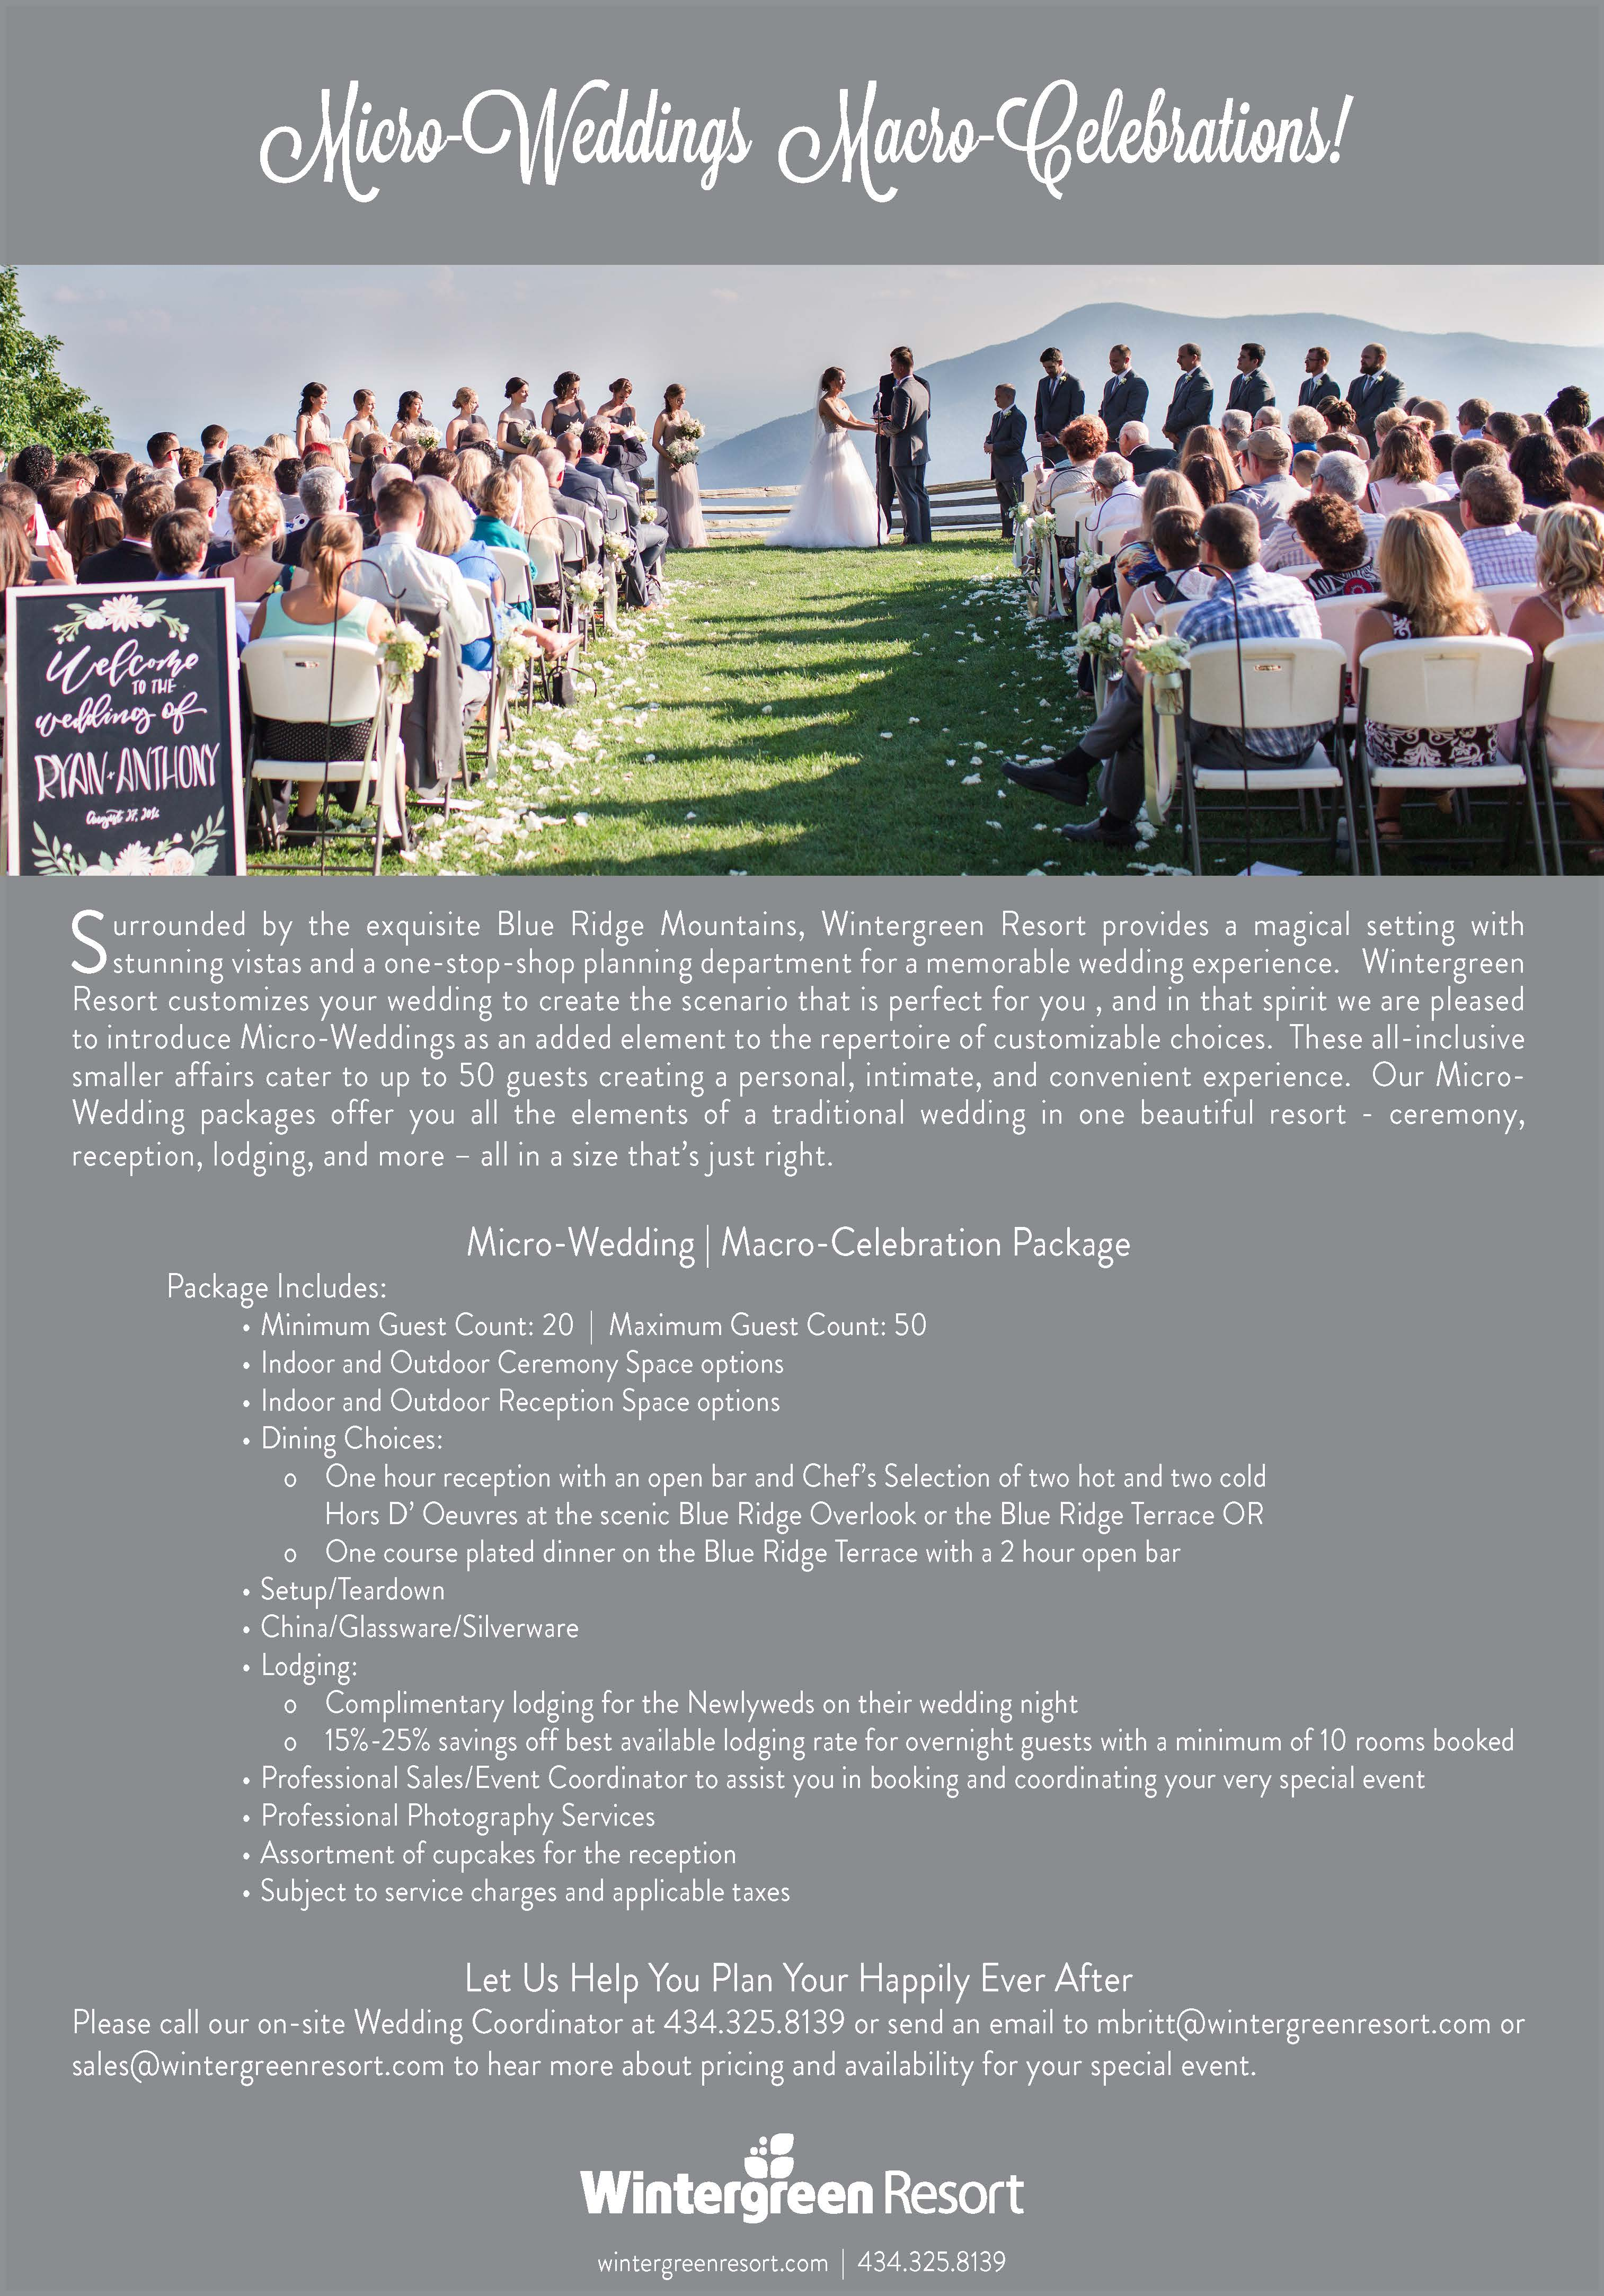 Wintergreen-Resort_micro-weddings-2020